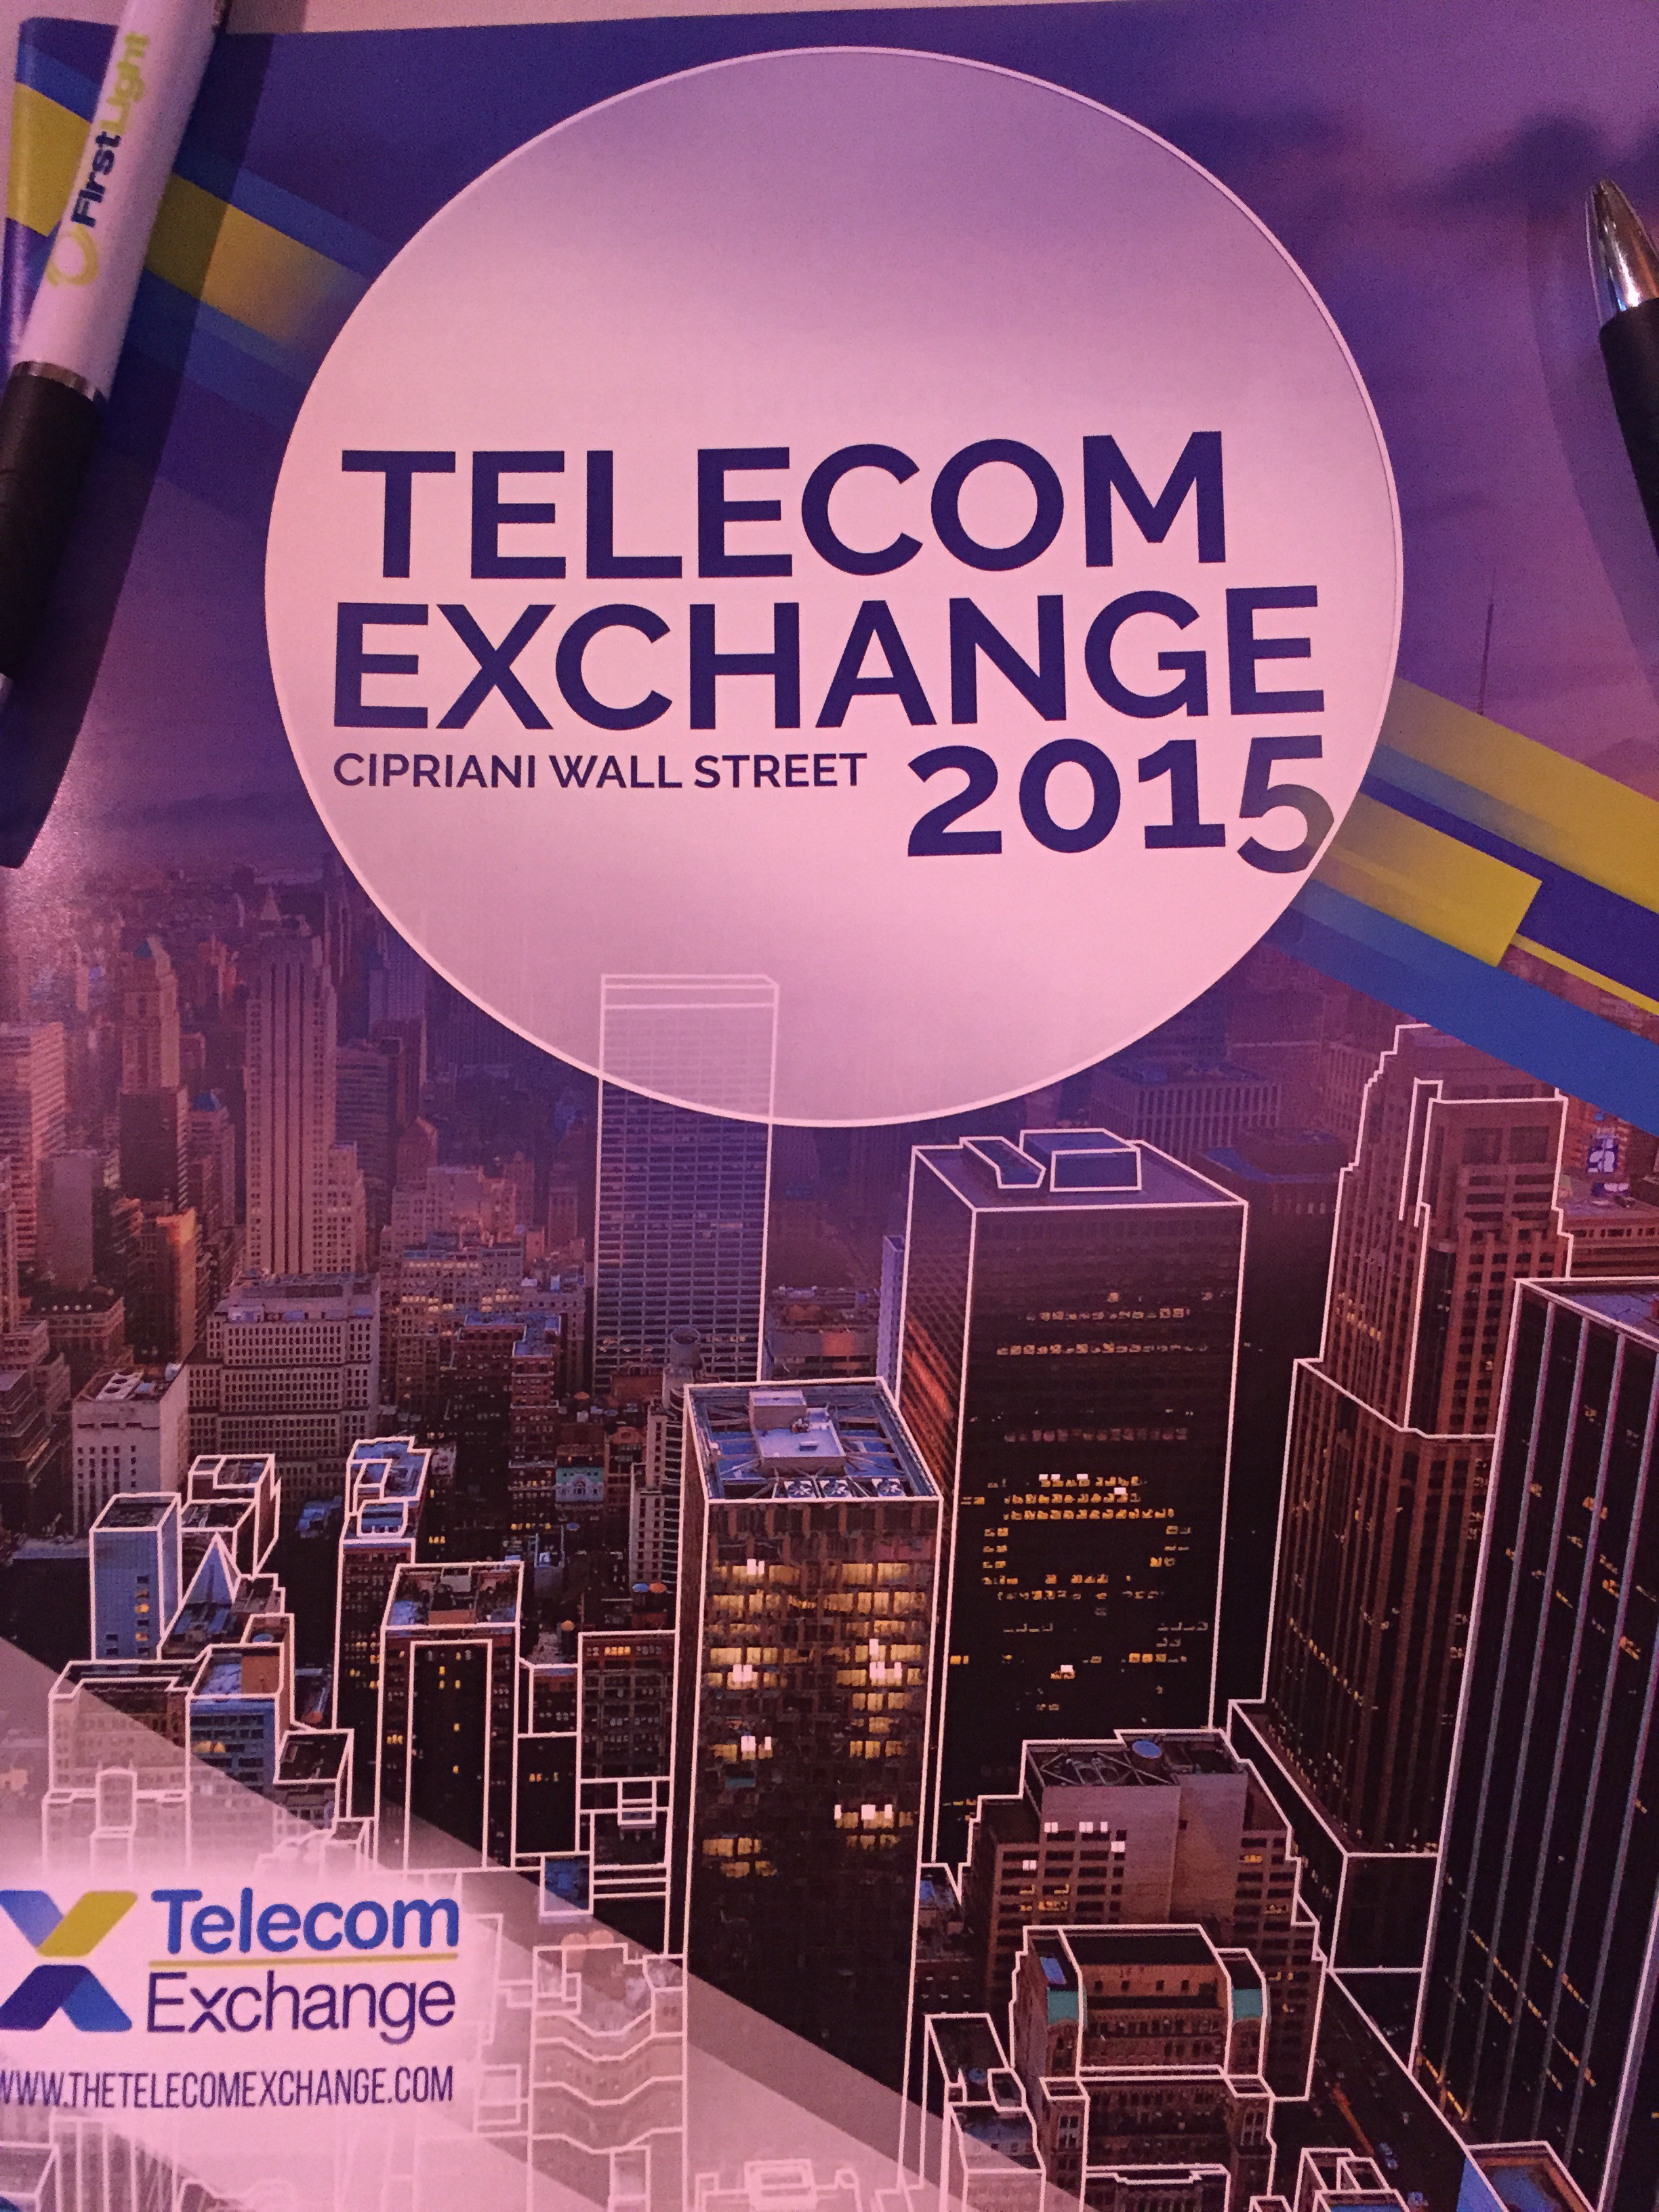 Back to New York for Telecom Exchange 2015